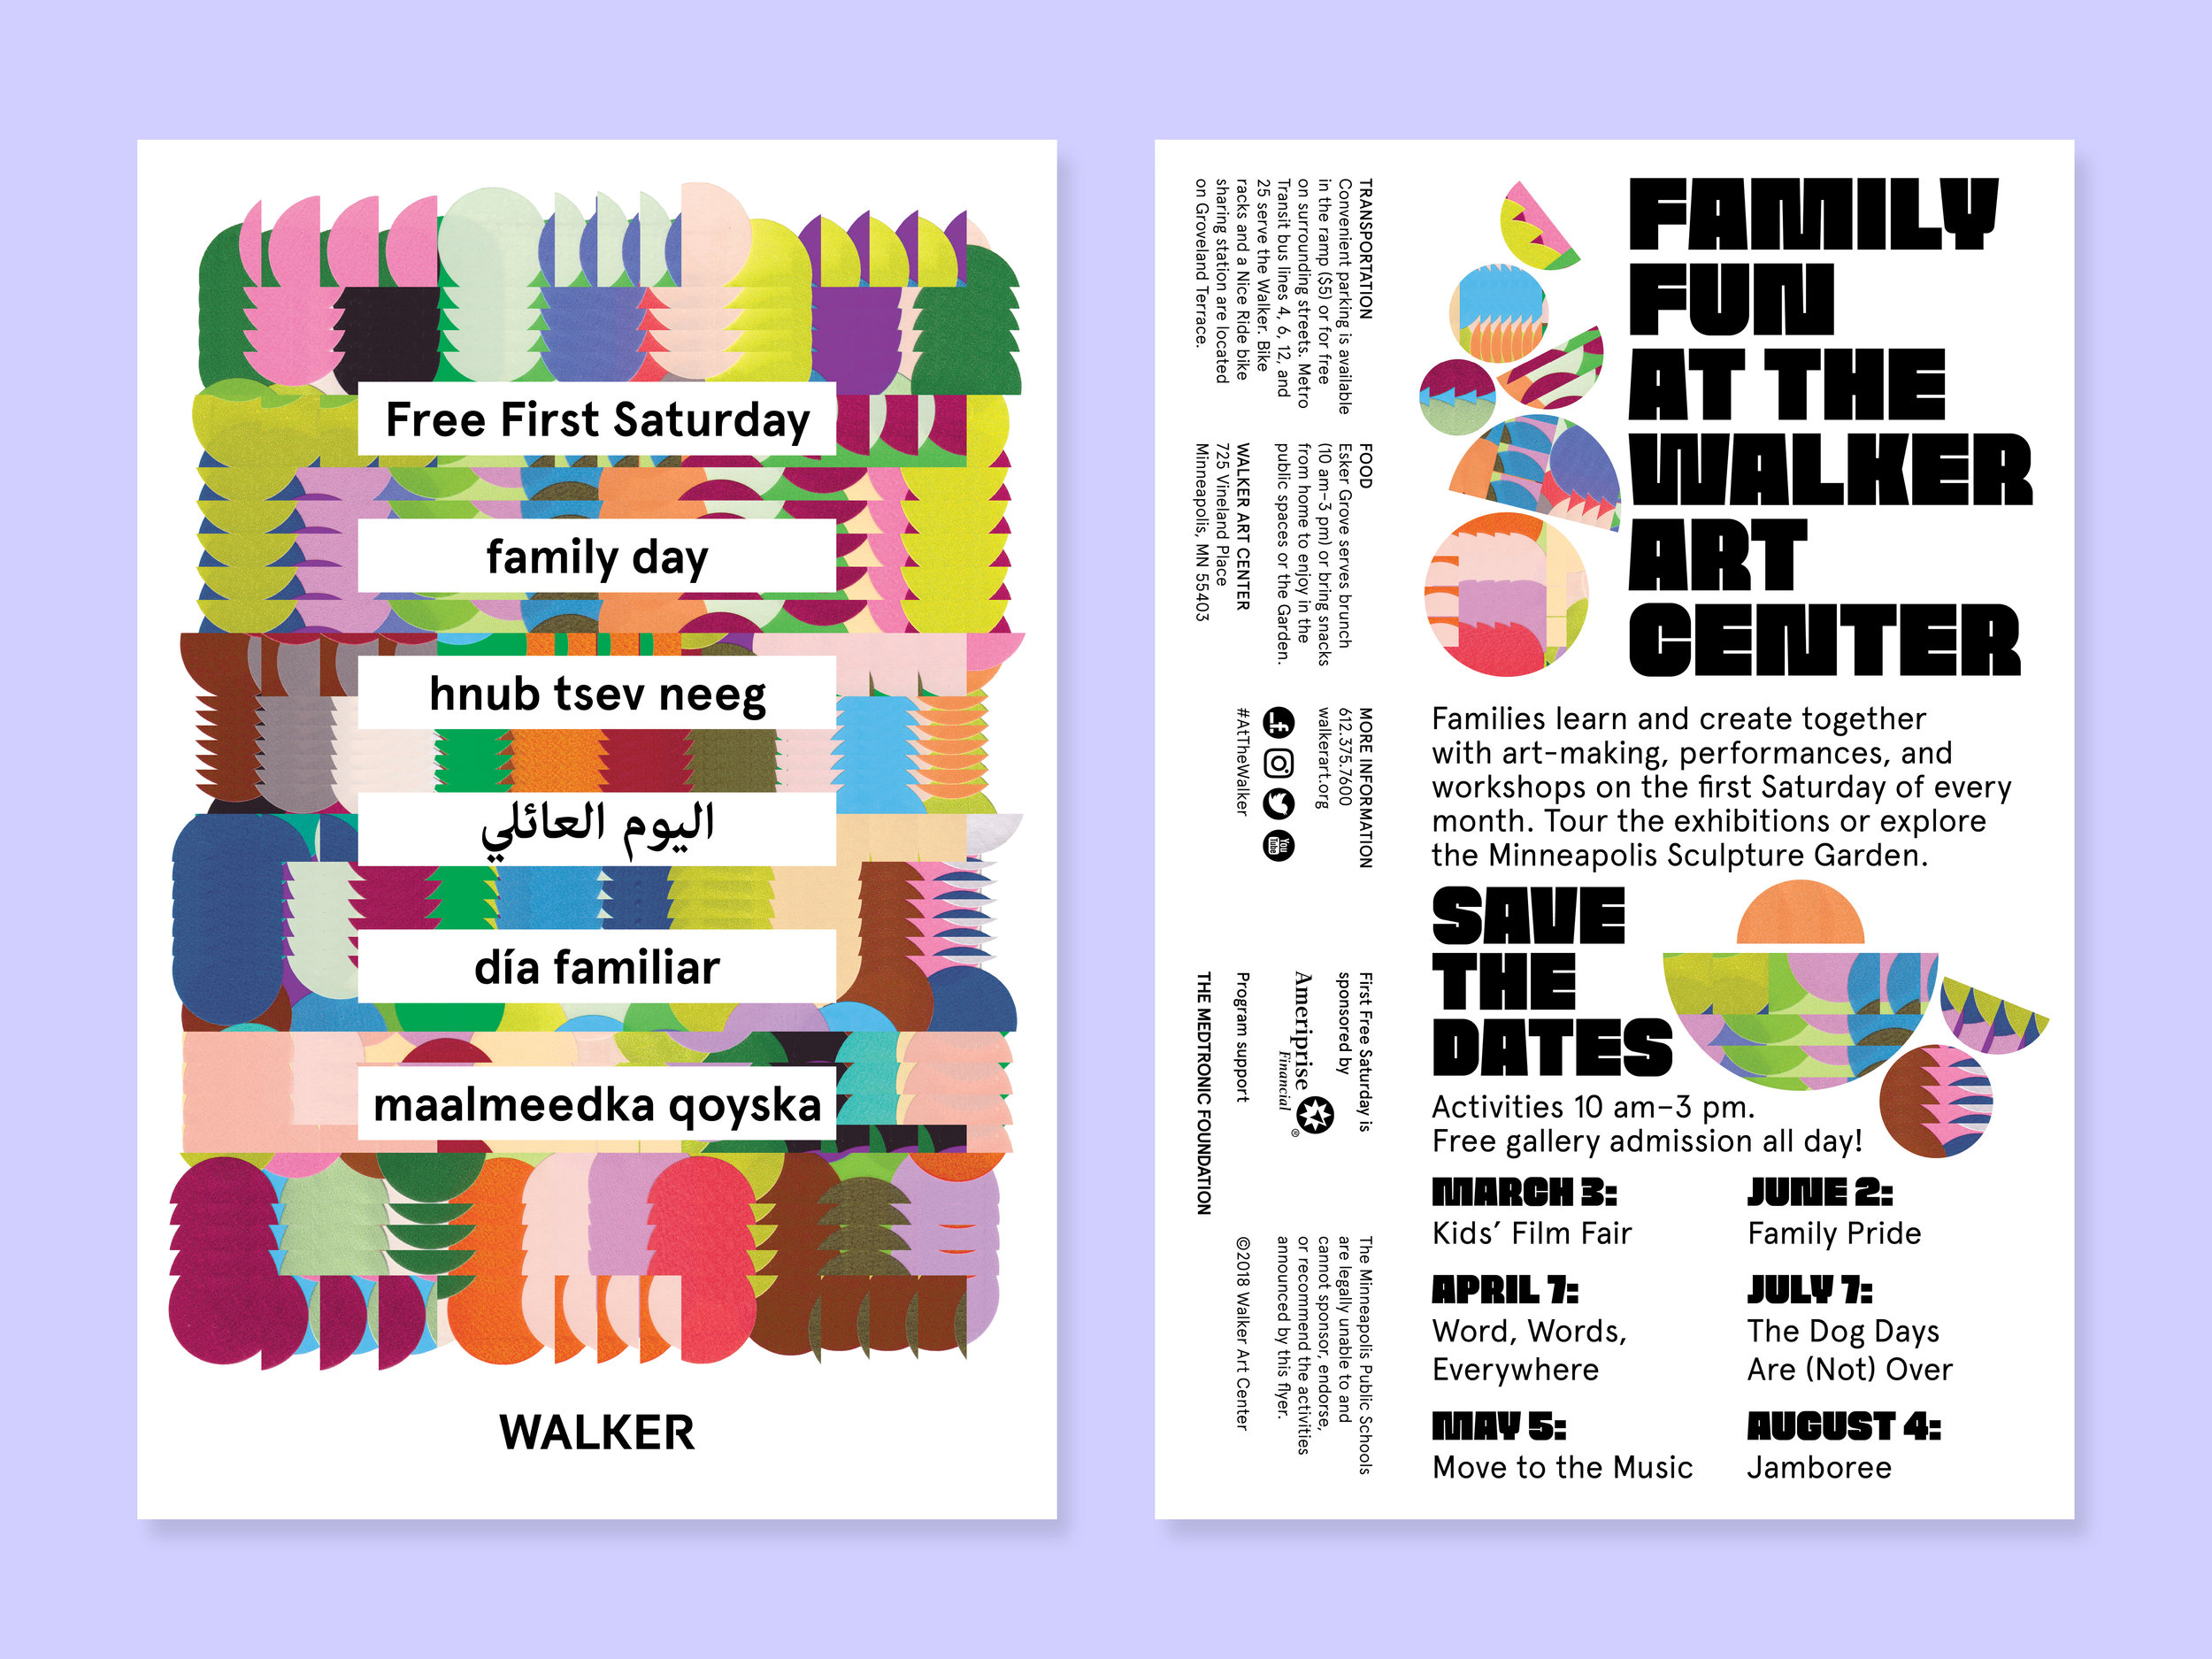 Postcard to advertise six months of Free First Saturday, the Walker Art Center's monthly family day.